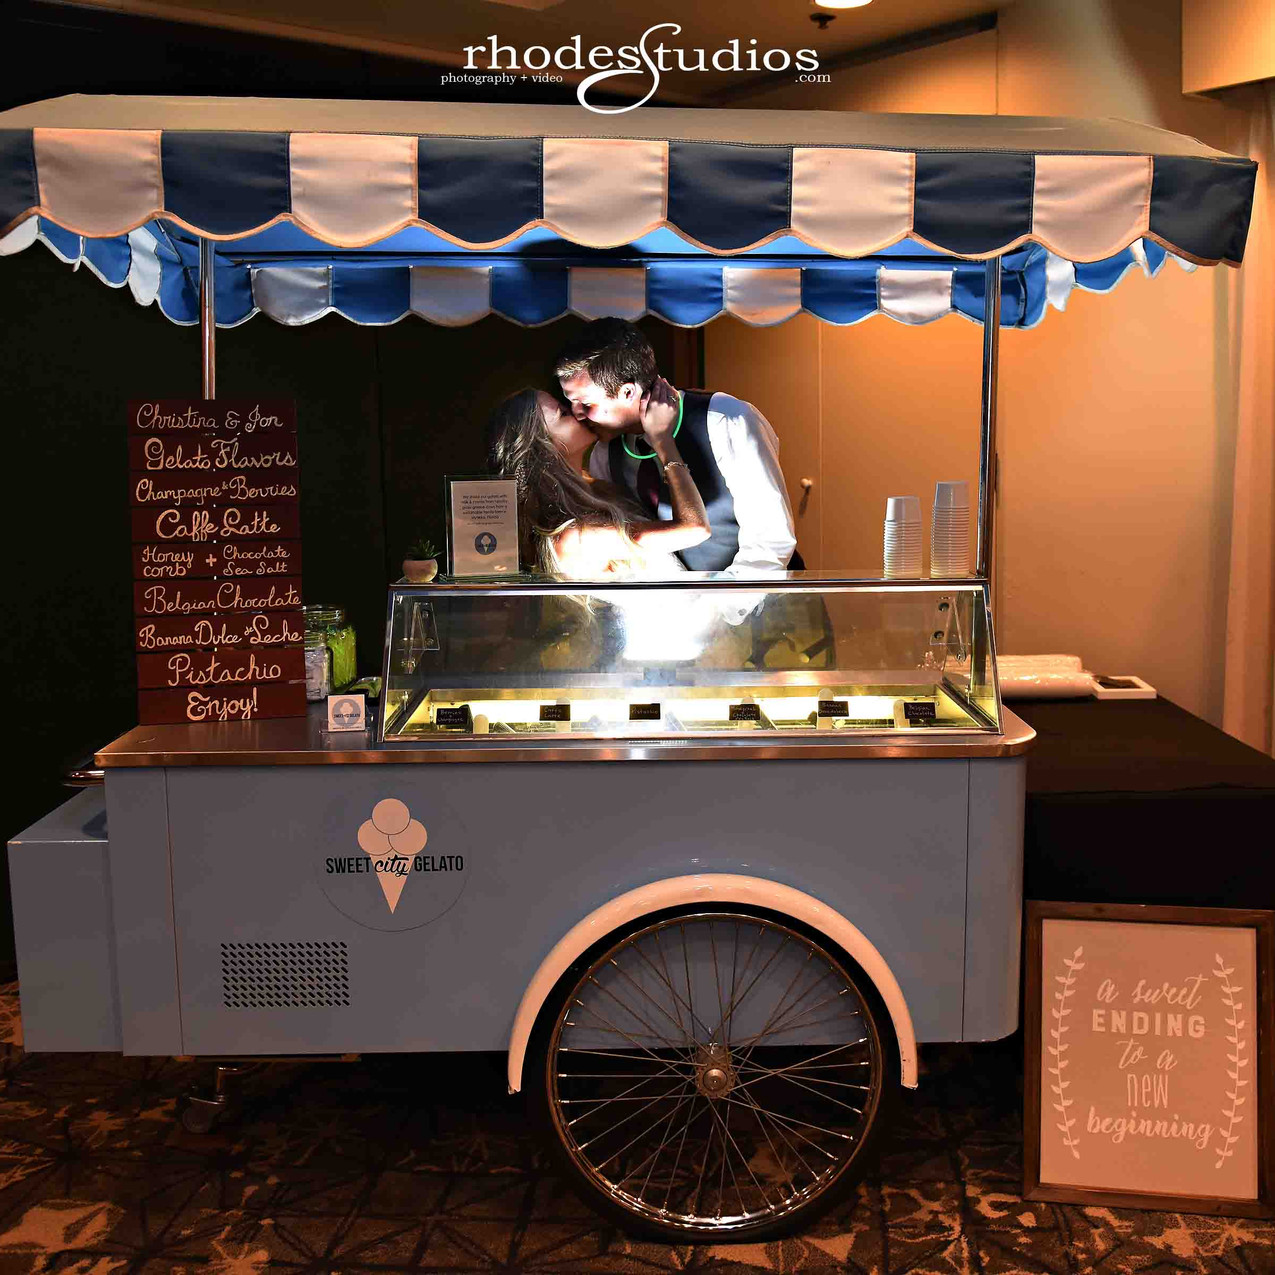 Who doesn't love a gelato cart!